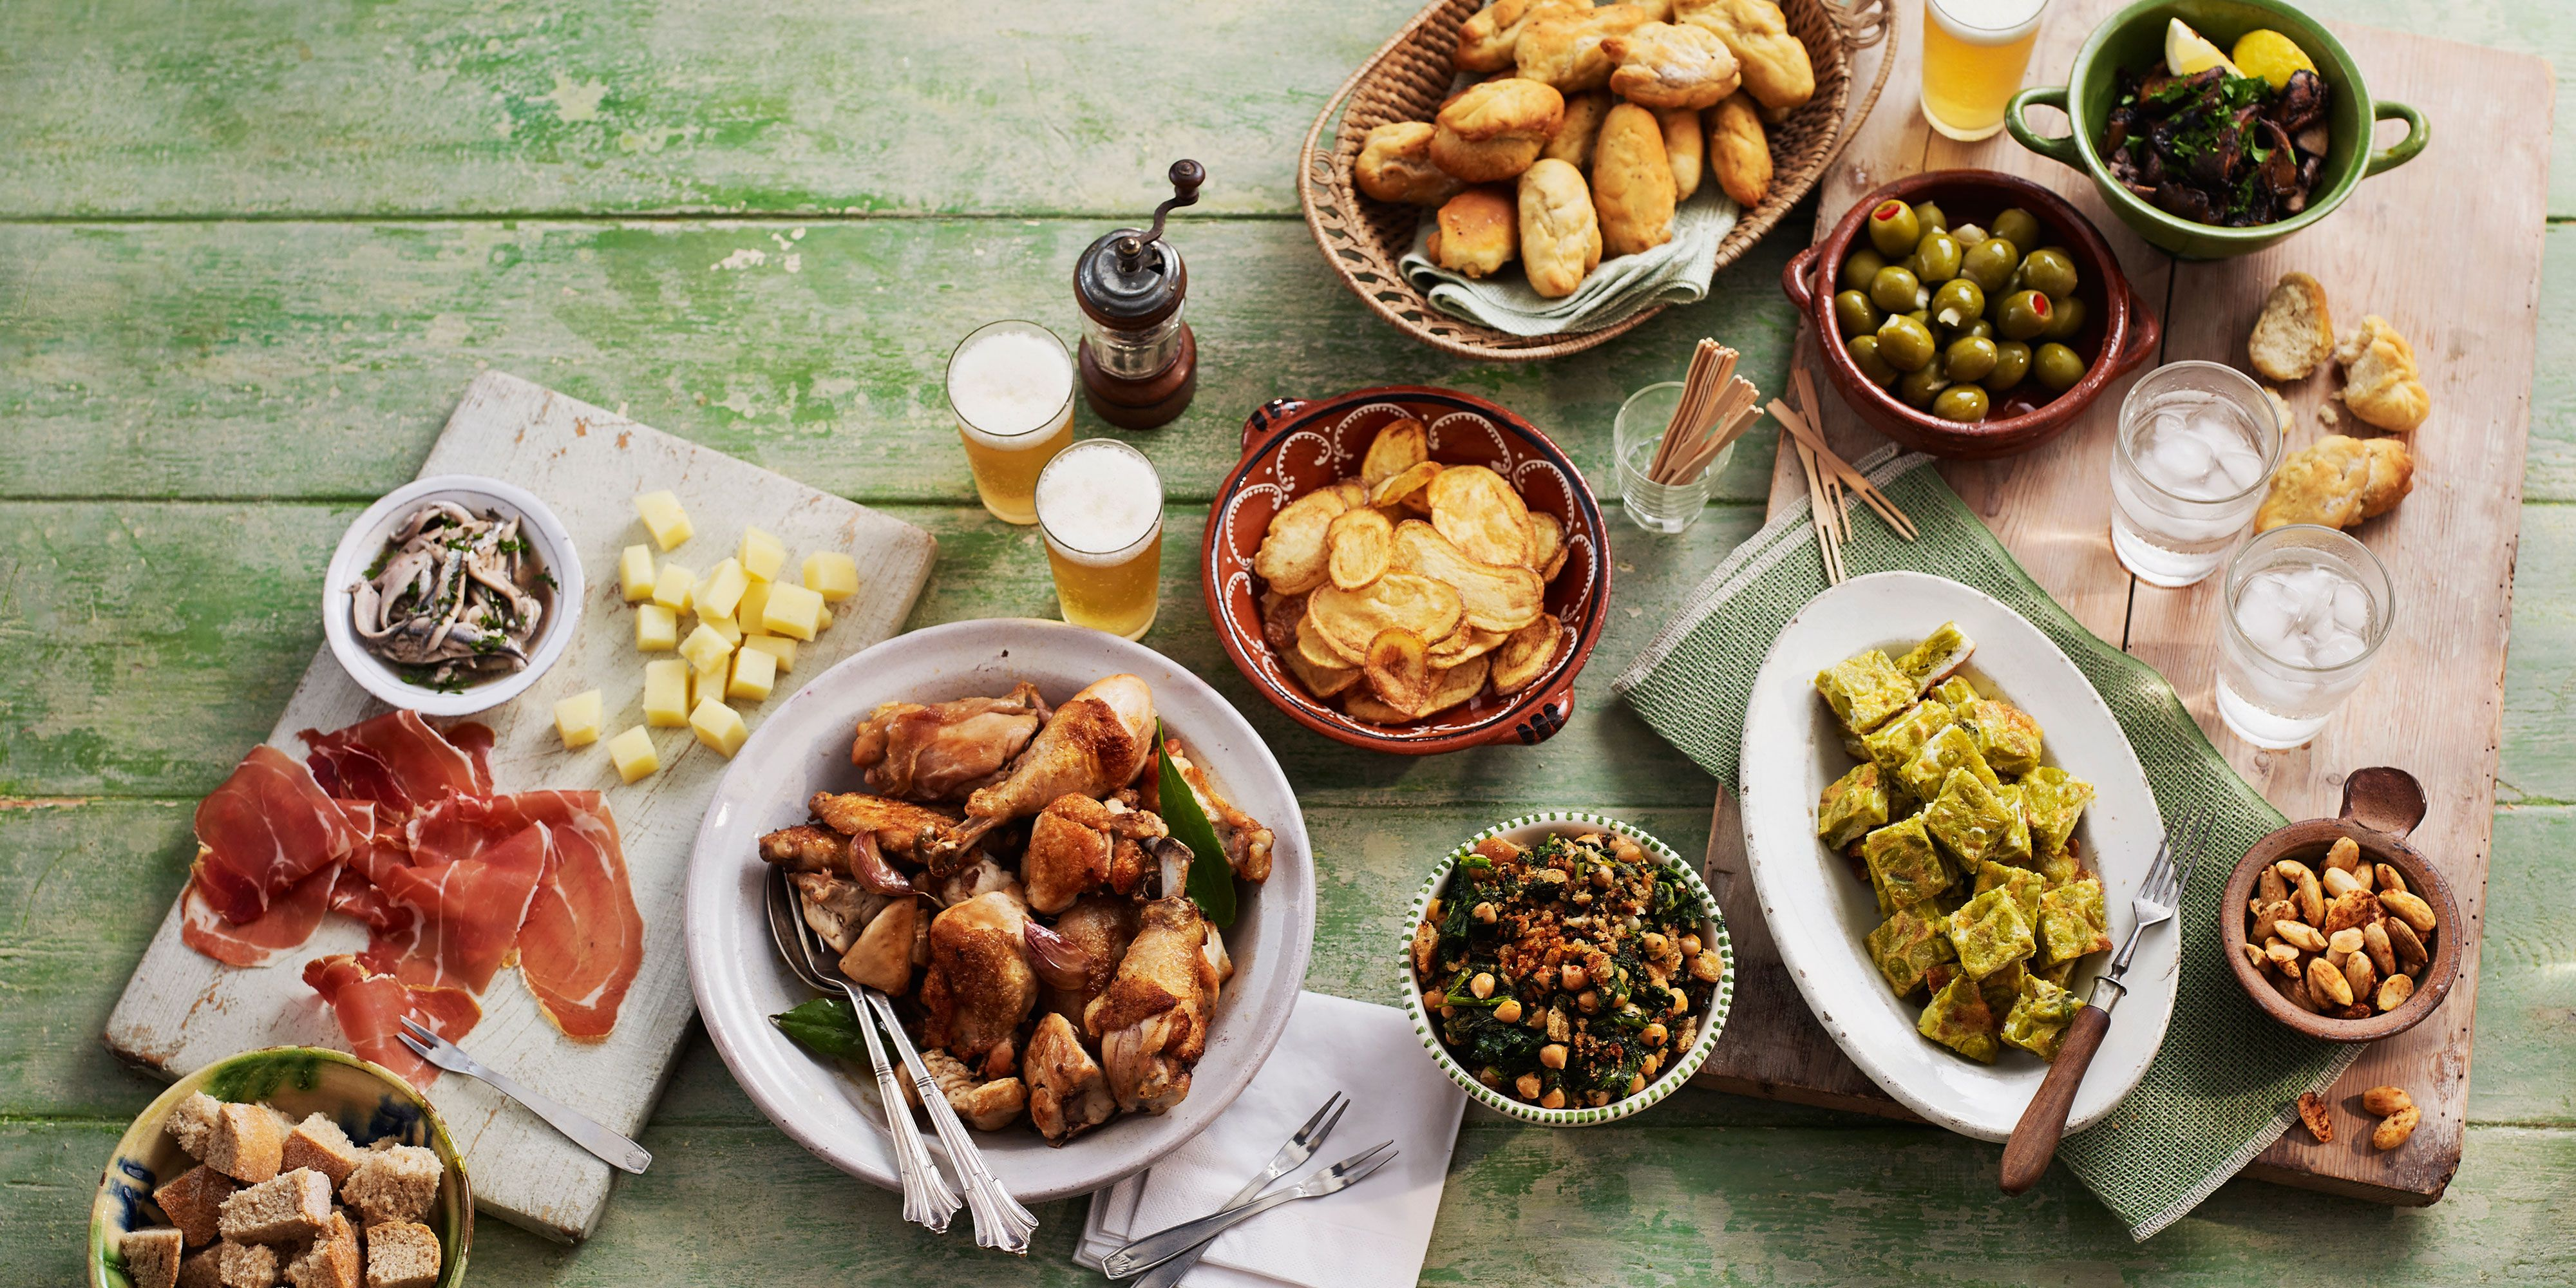 8 tips to avoid overindulging at a holiday potluck healthy holiday